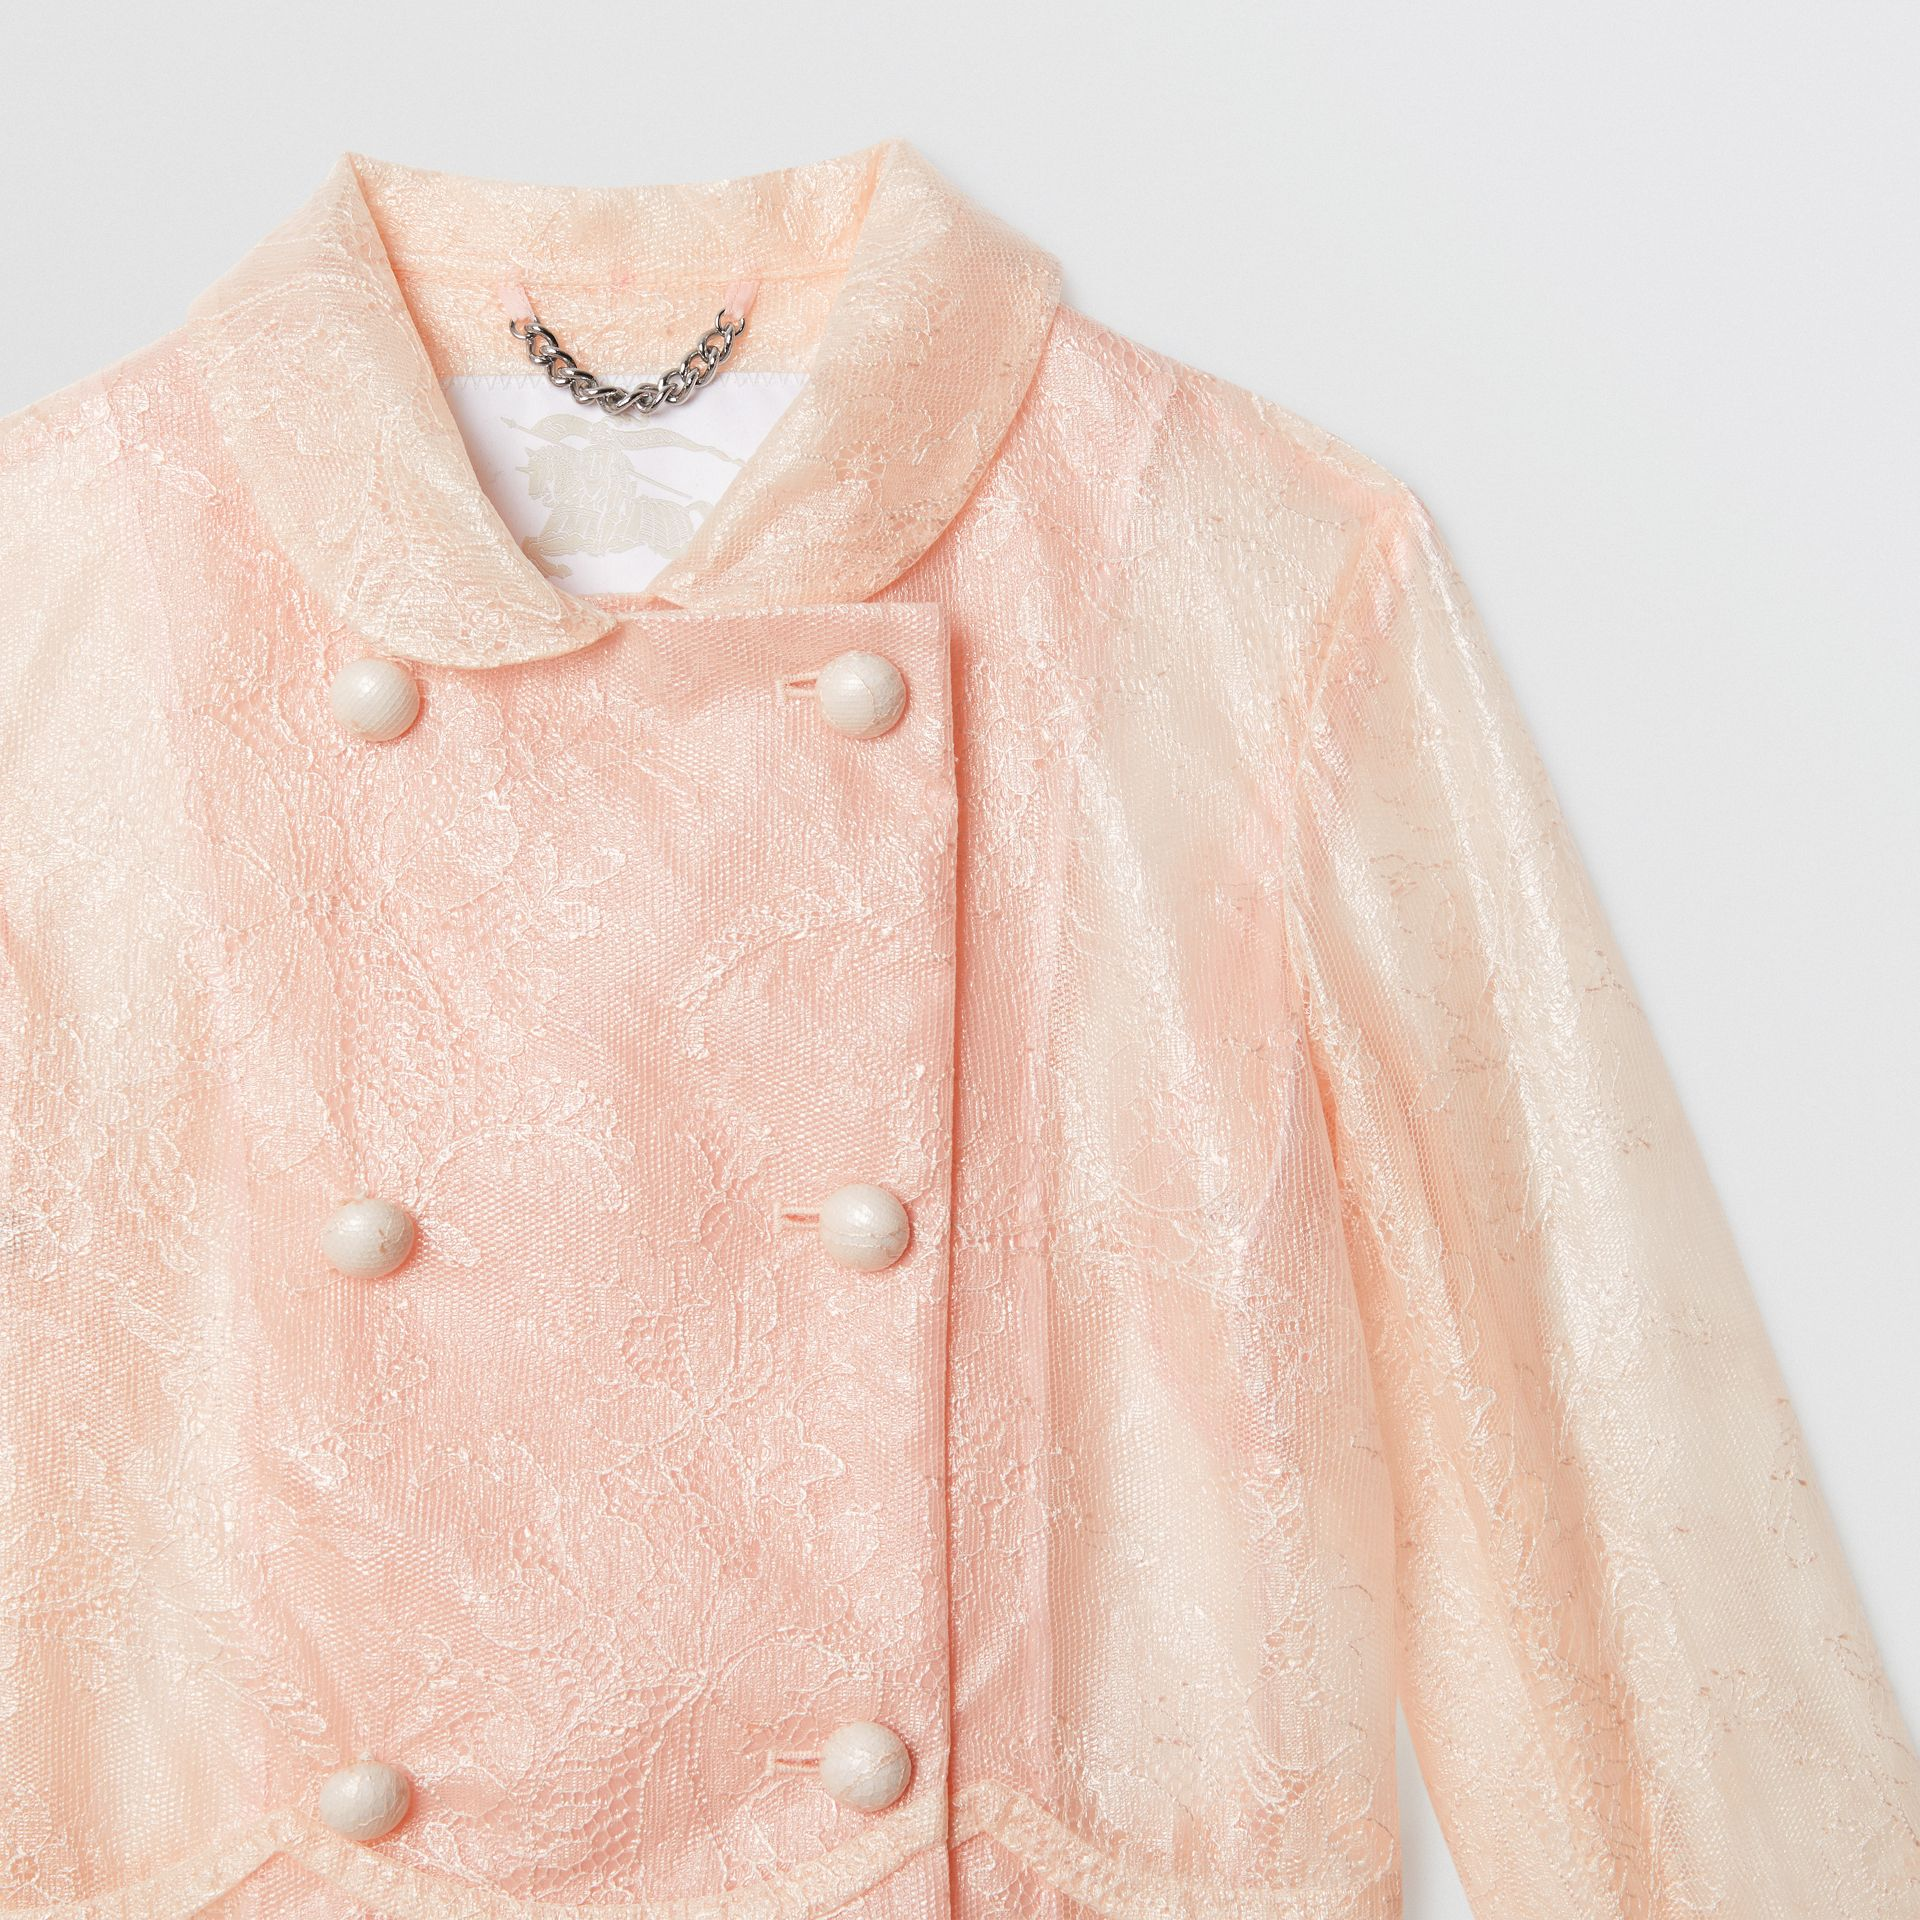 Laminated Lace Jacket in Pale Pink | Burberry United States - gallery image 4